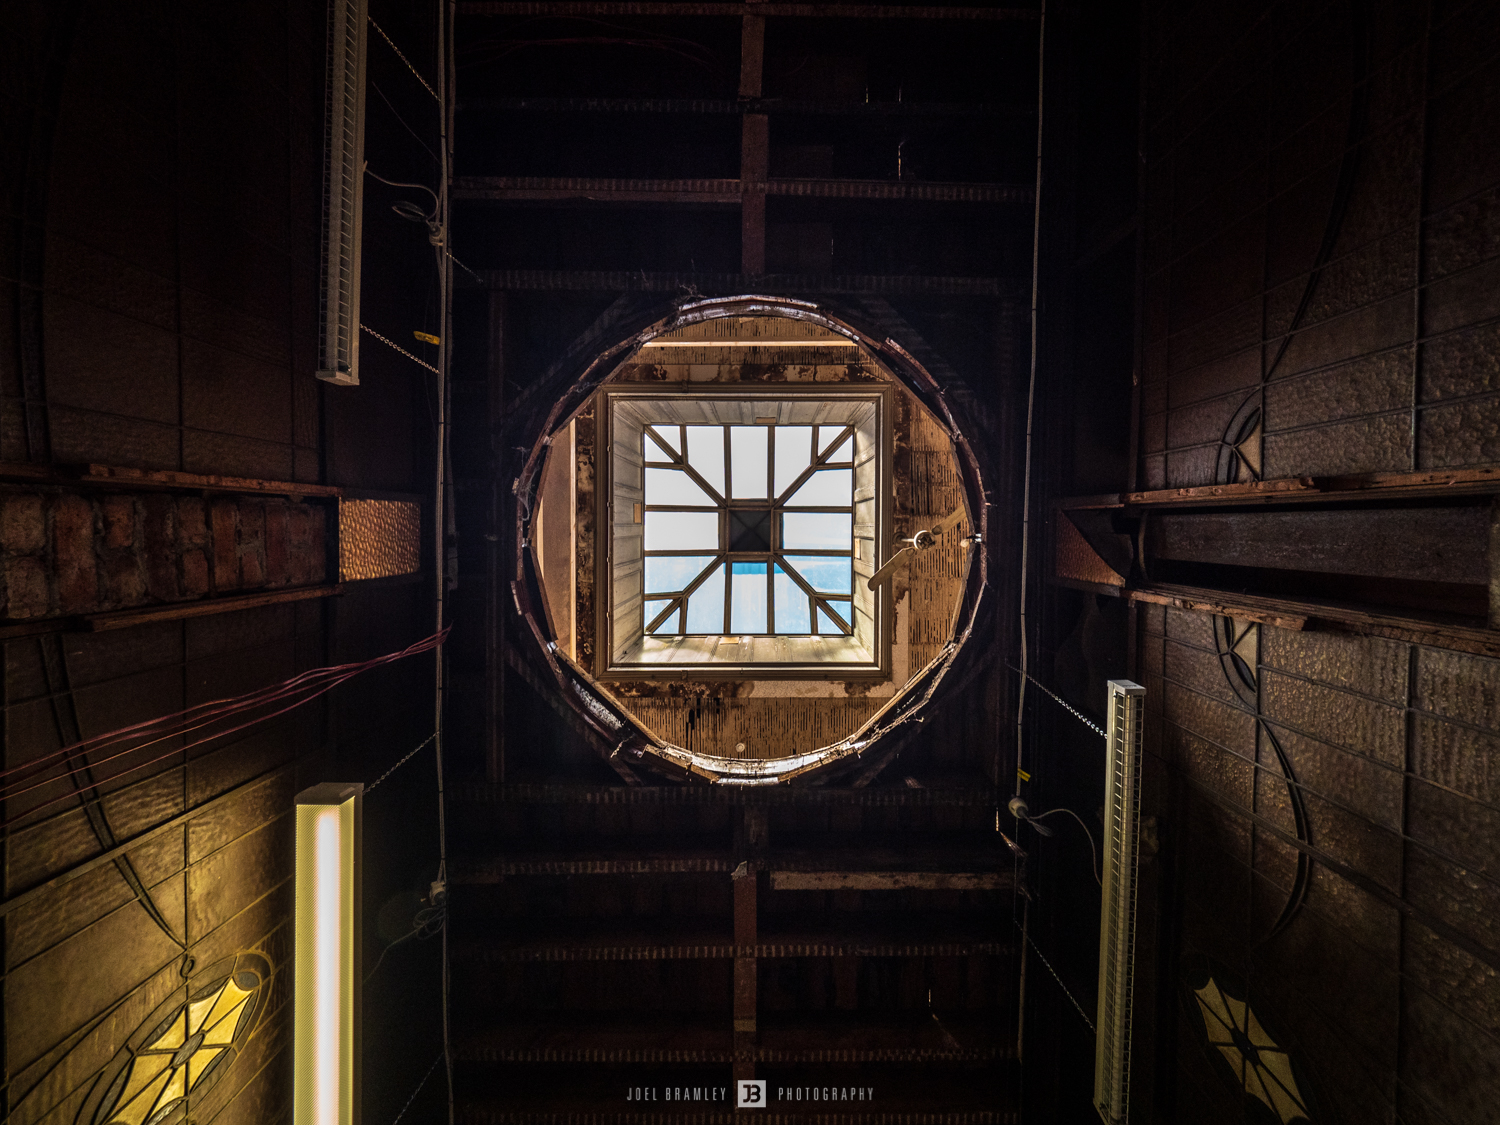 Now that's a skylight!